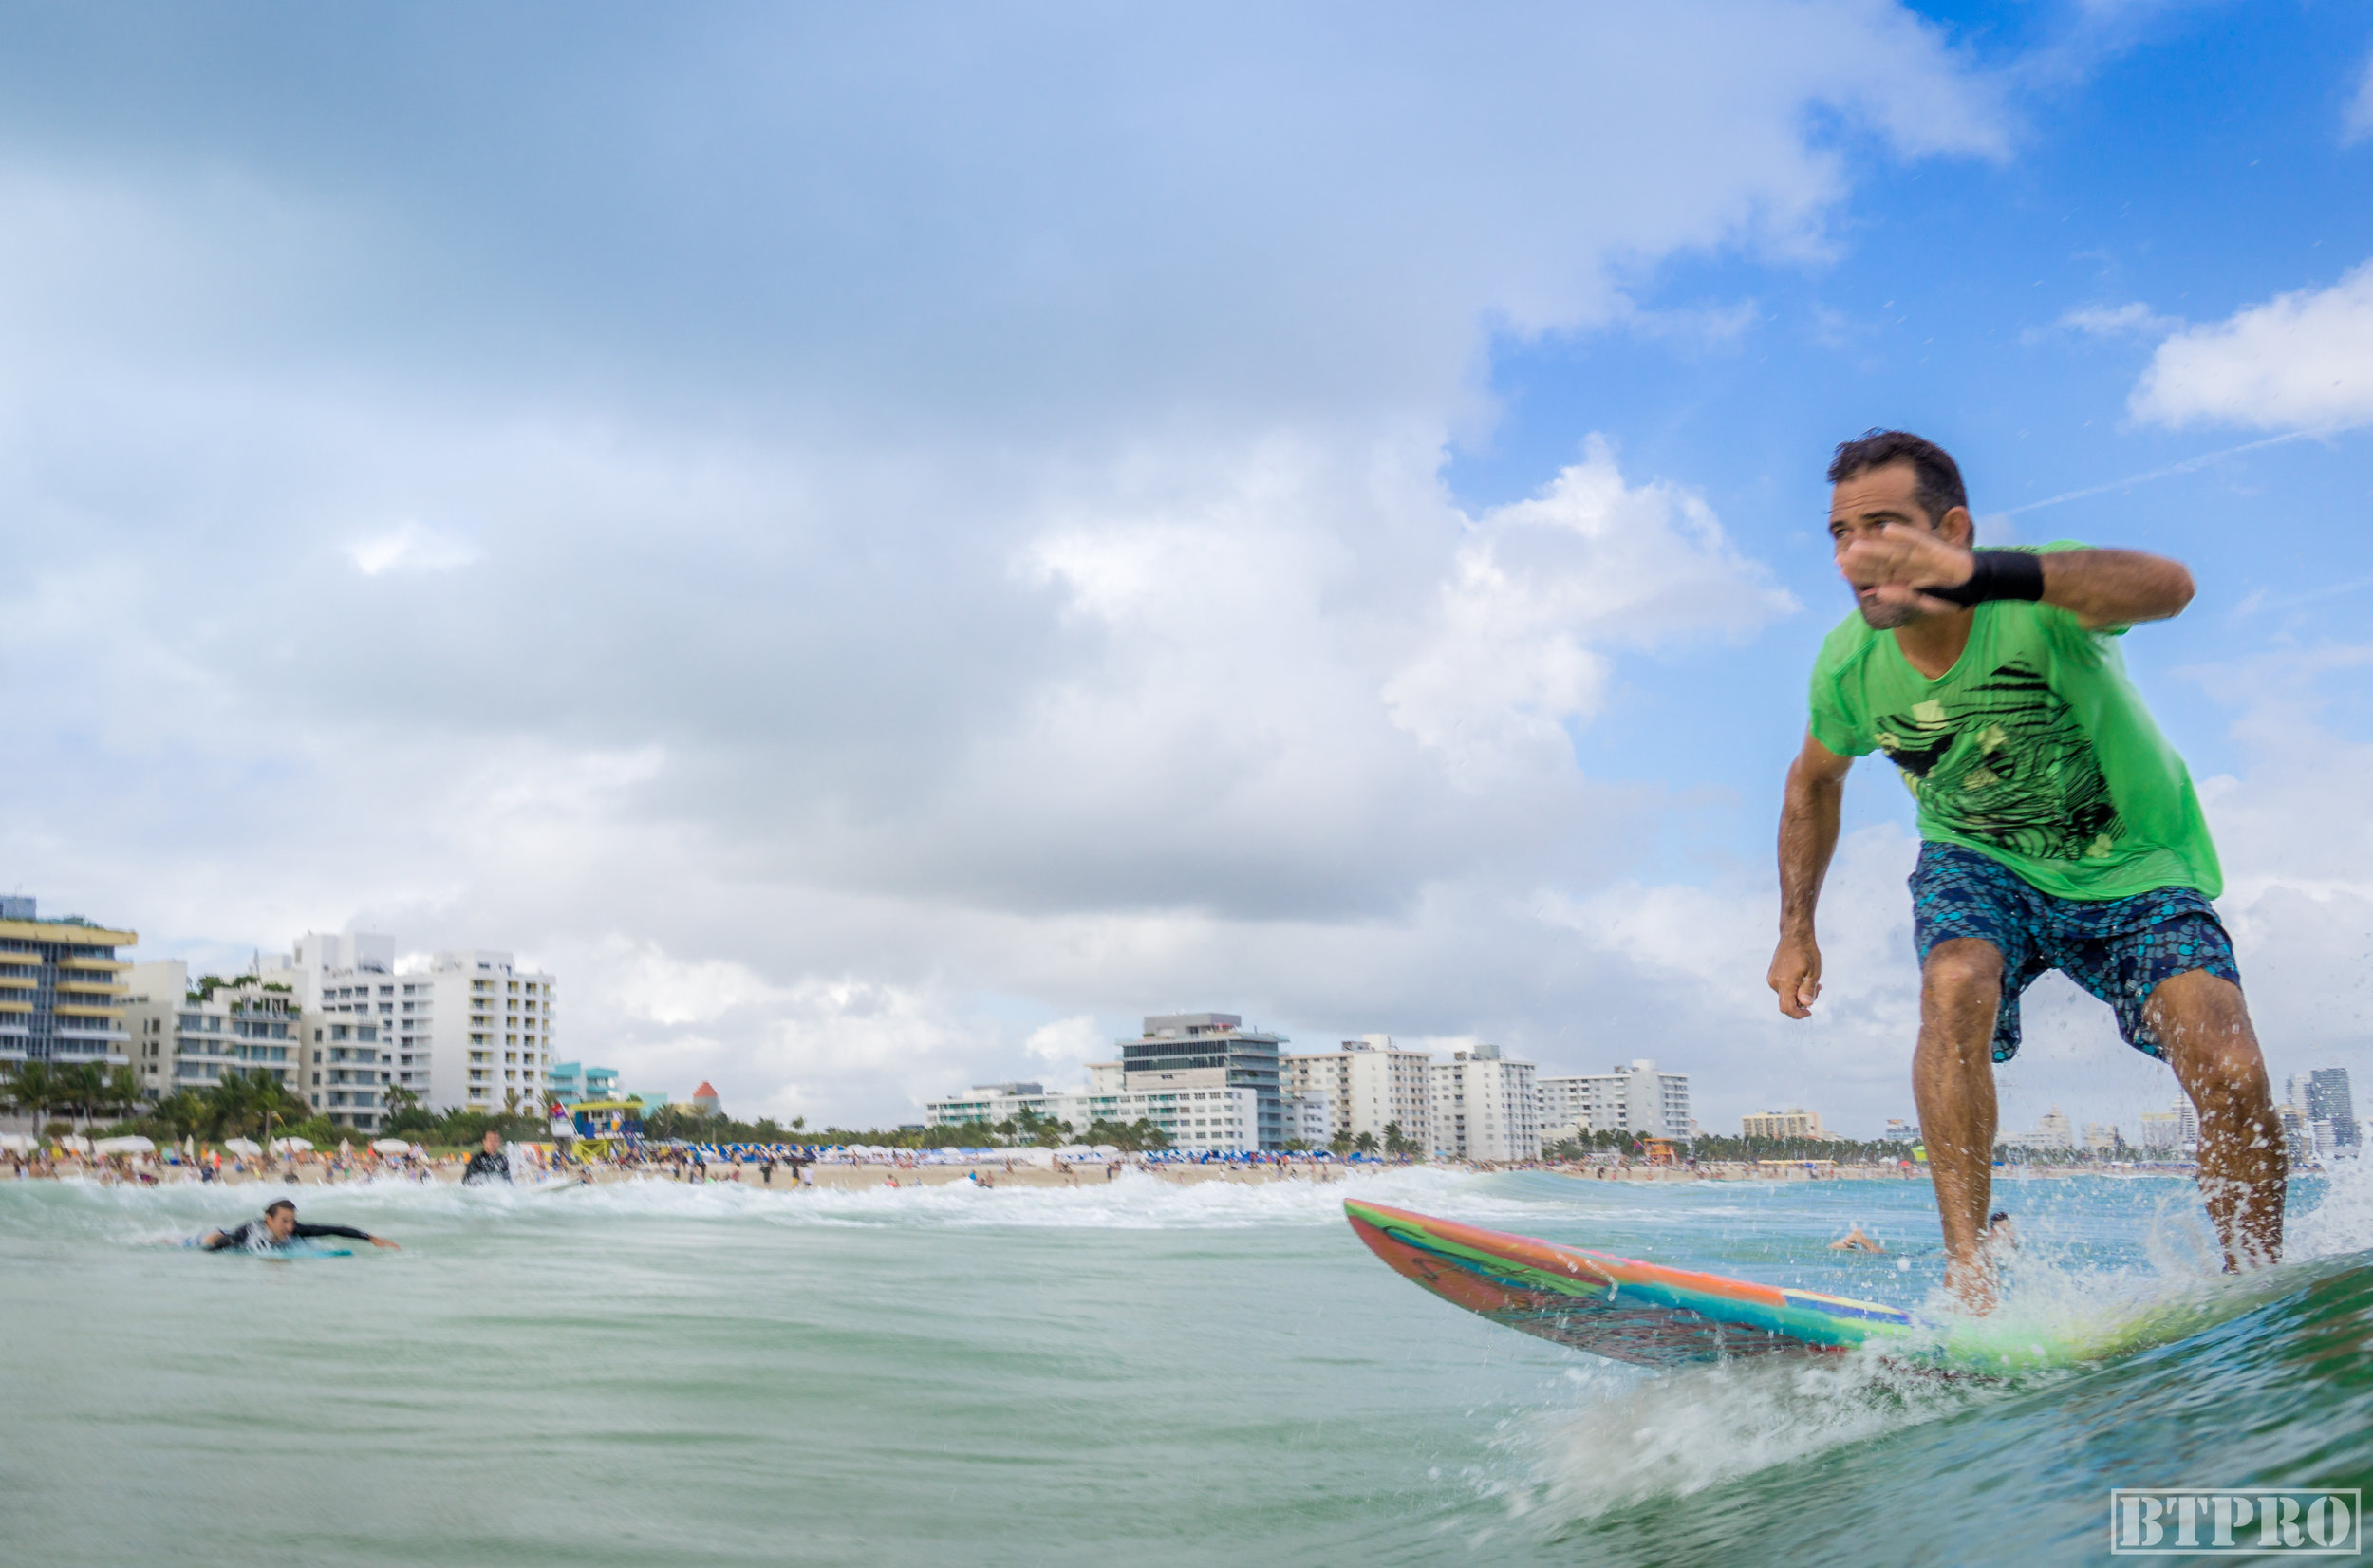 surf, surf photography, photography, water sports, miamii, south beach, a6000, water housing, sony, surfer